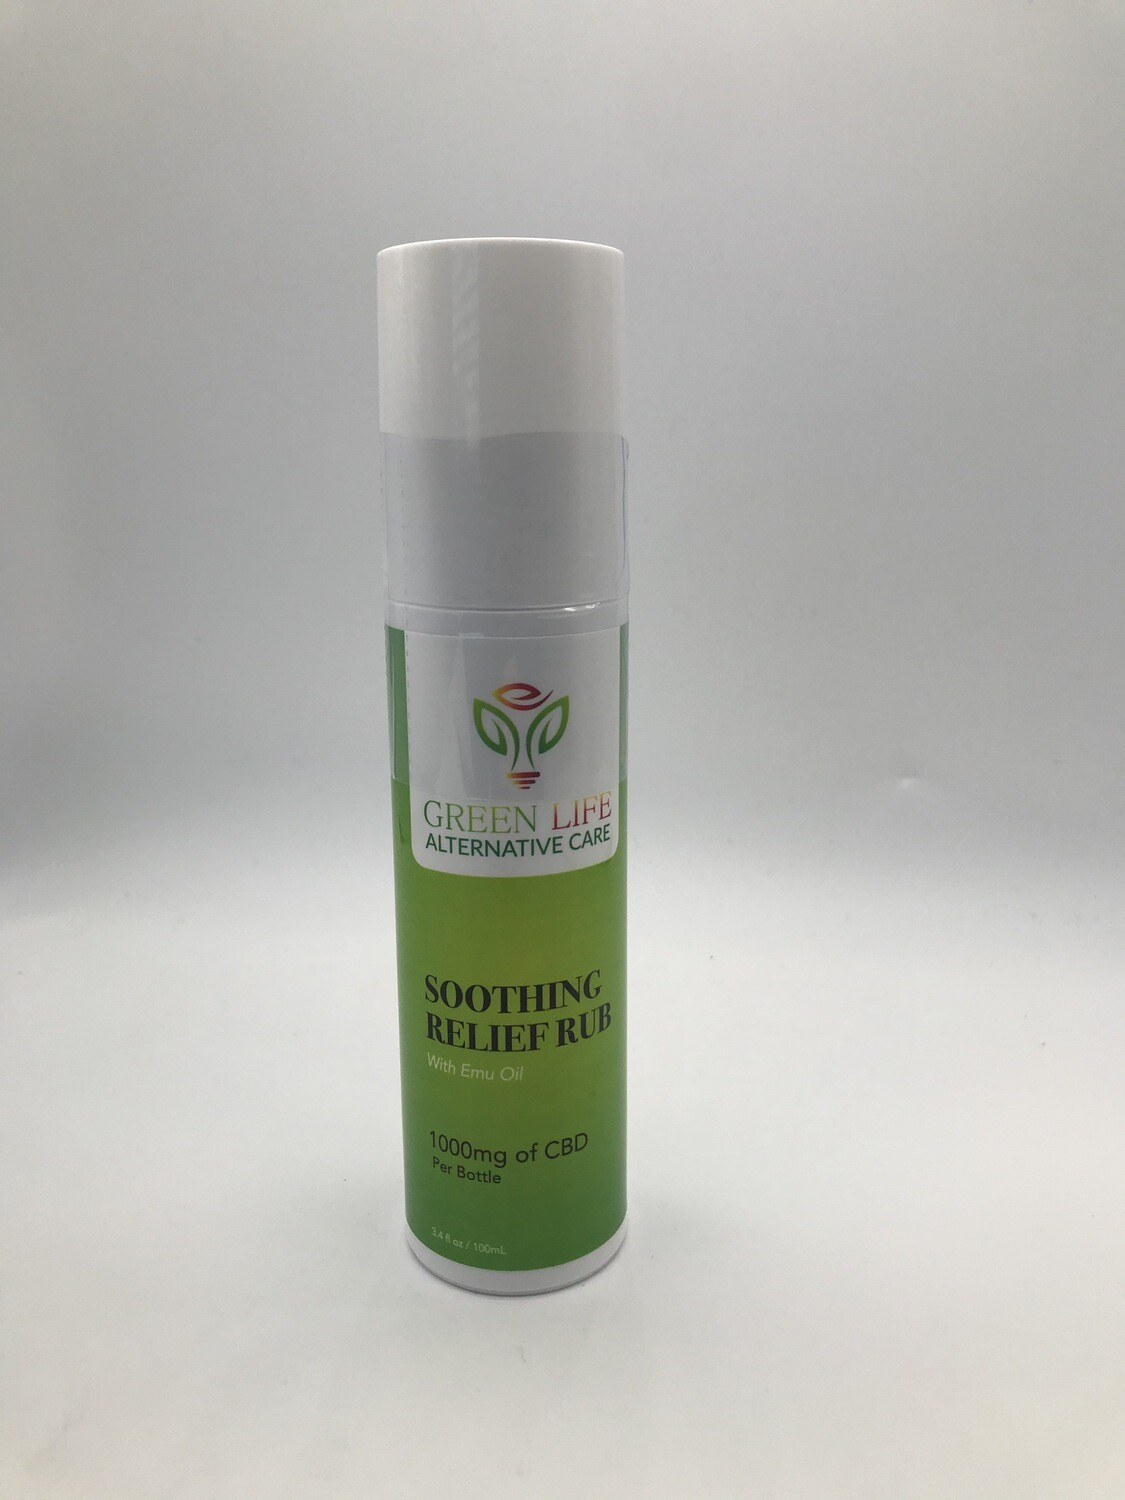 GLAC intensive Relief Rub with Emu Oil 1000mg